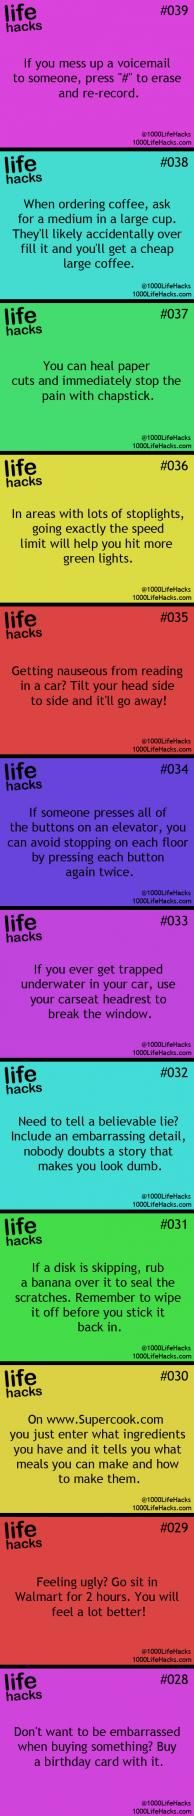 25 Useful Life Hacks | ifunnystuffs